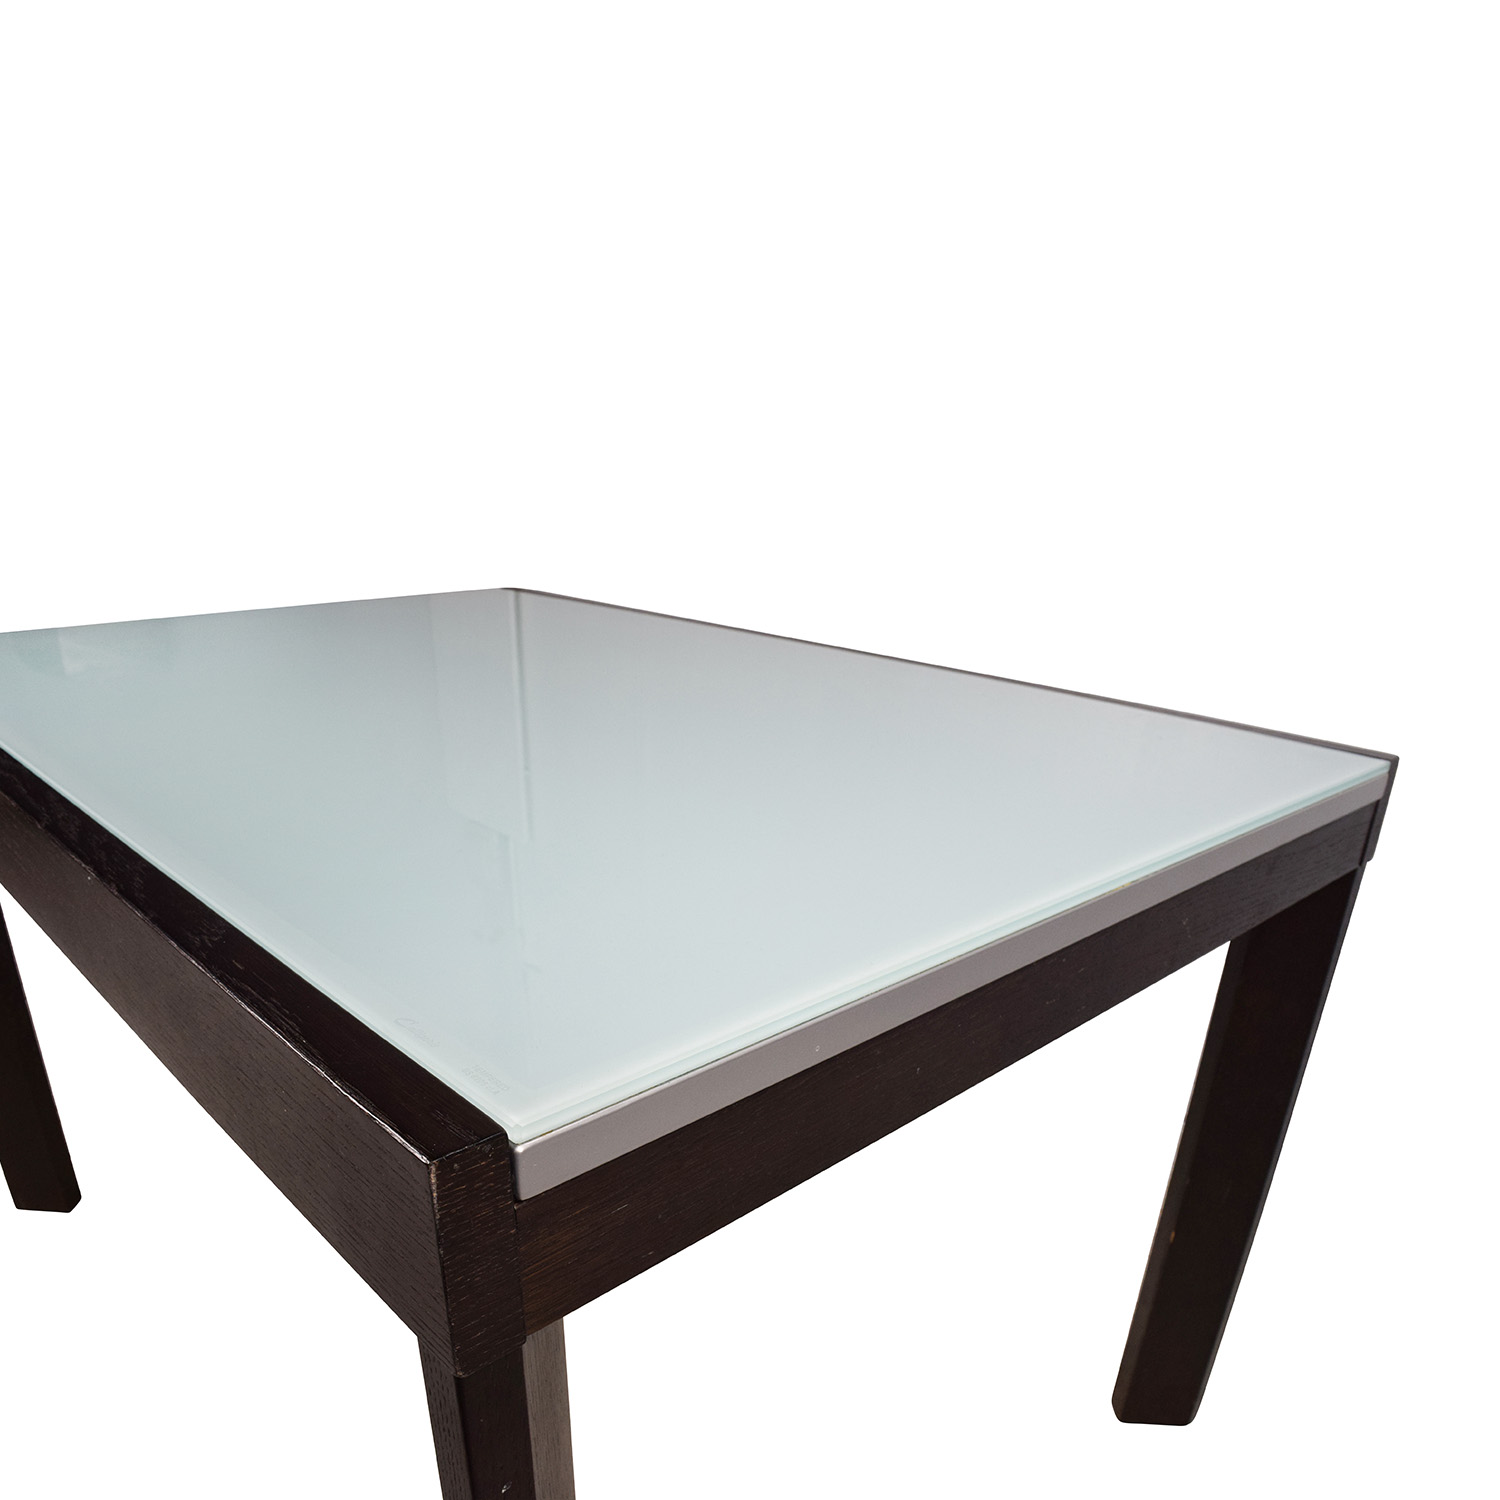 75% OFF Calligaris Calligaris Extendable Glass Dining Table Tables